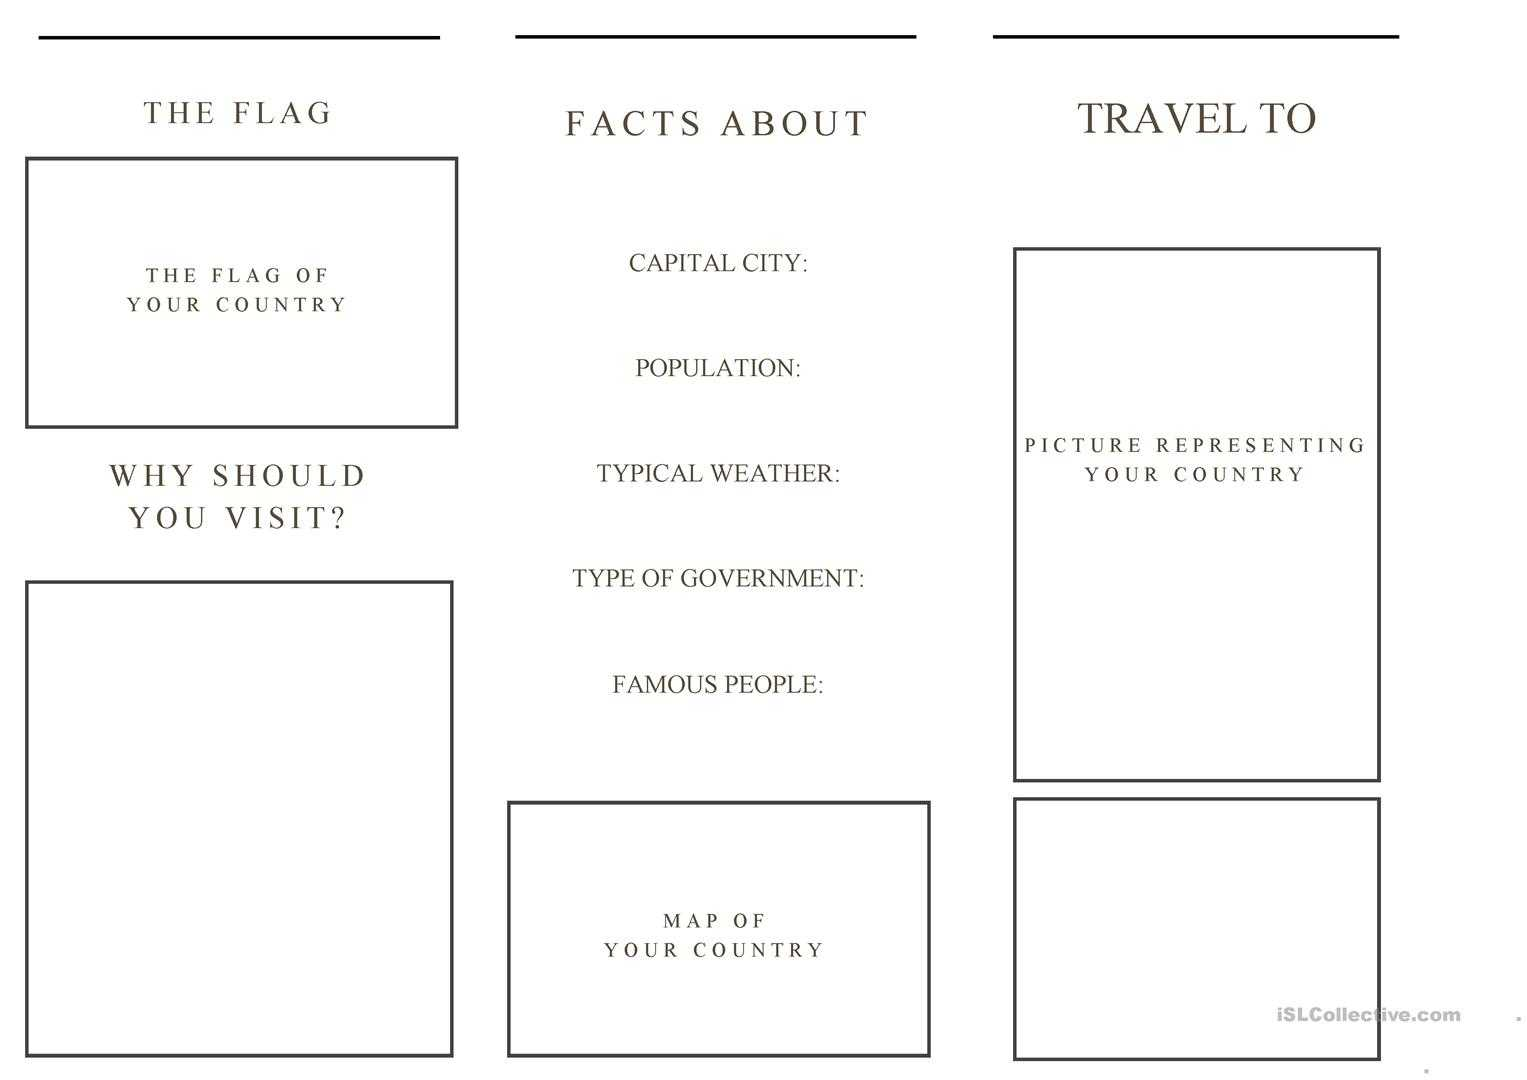 Travel Brochure Template And Example Brochure - English Esl Inside Travel Brochure Template For Students